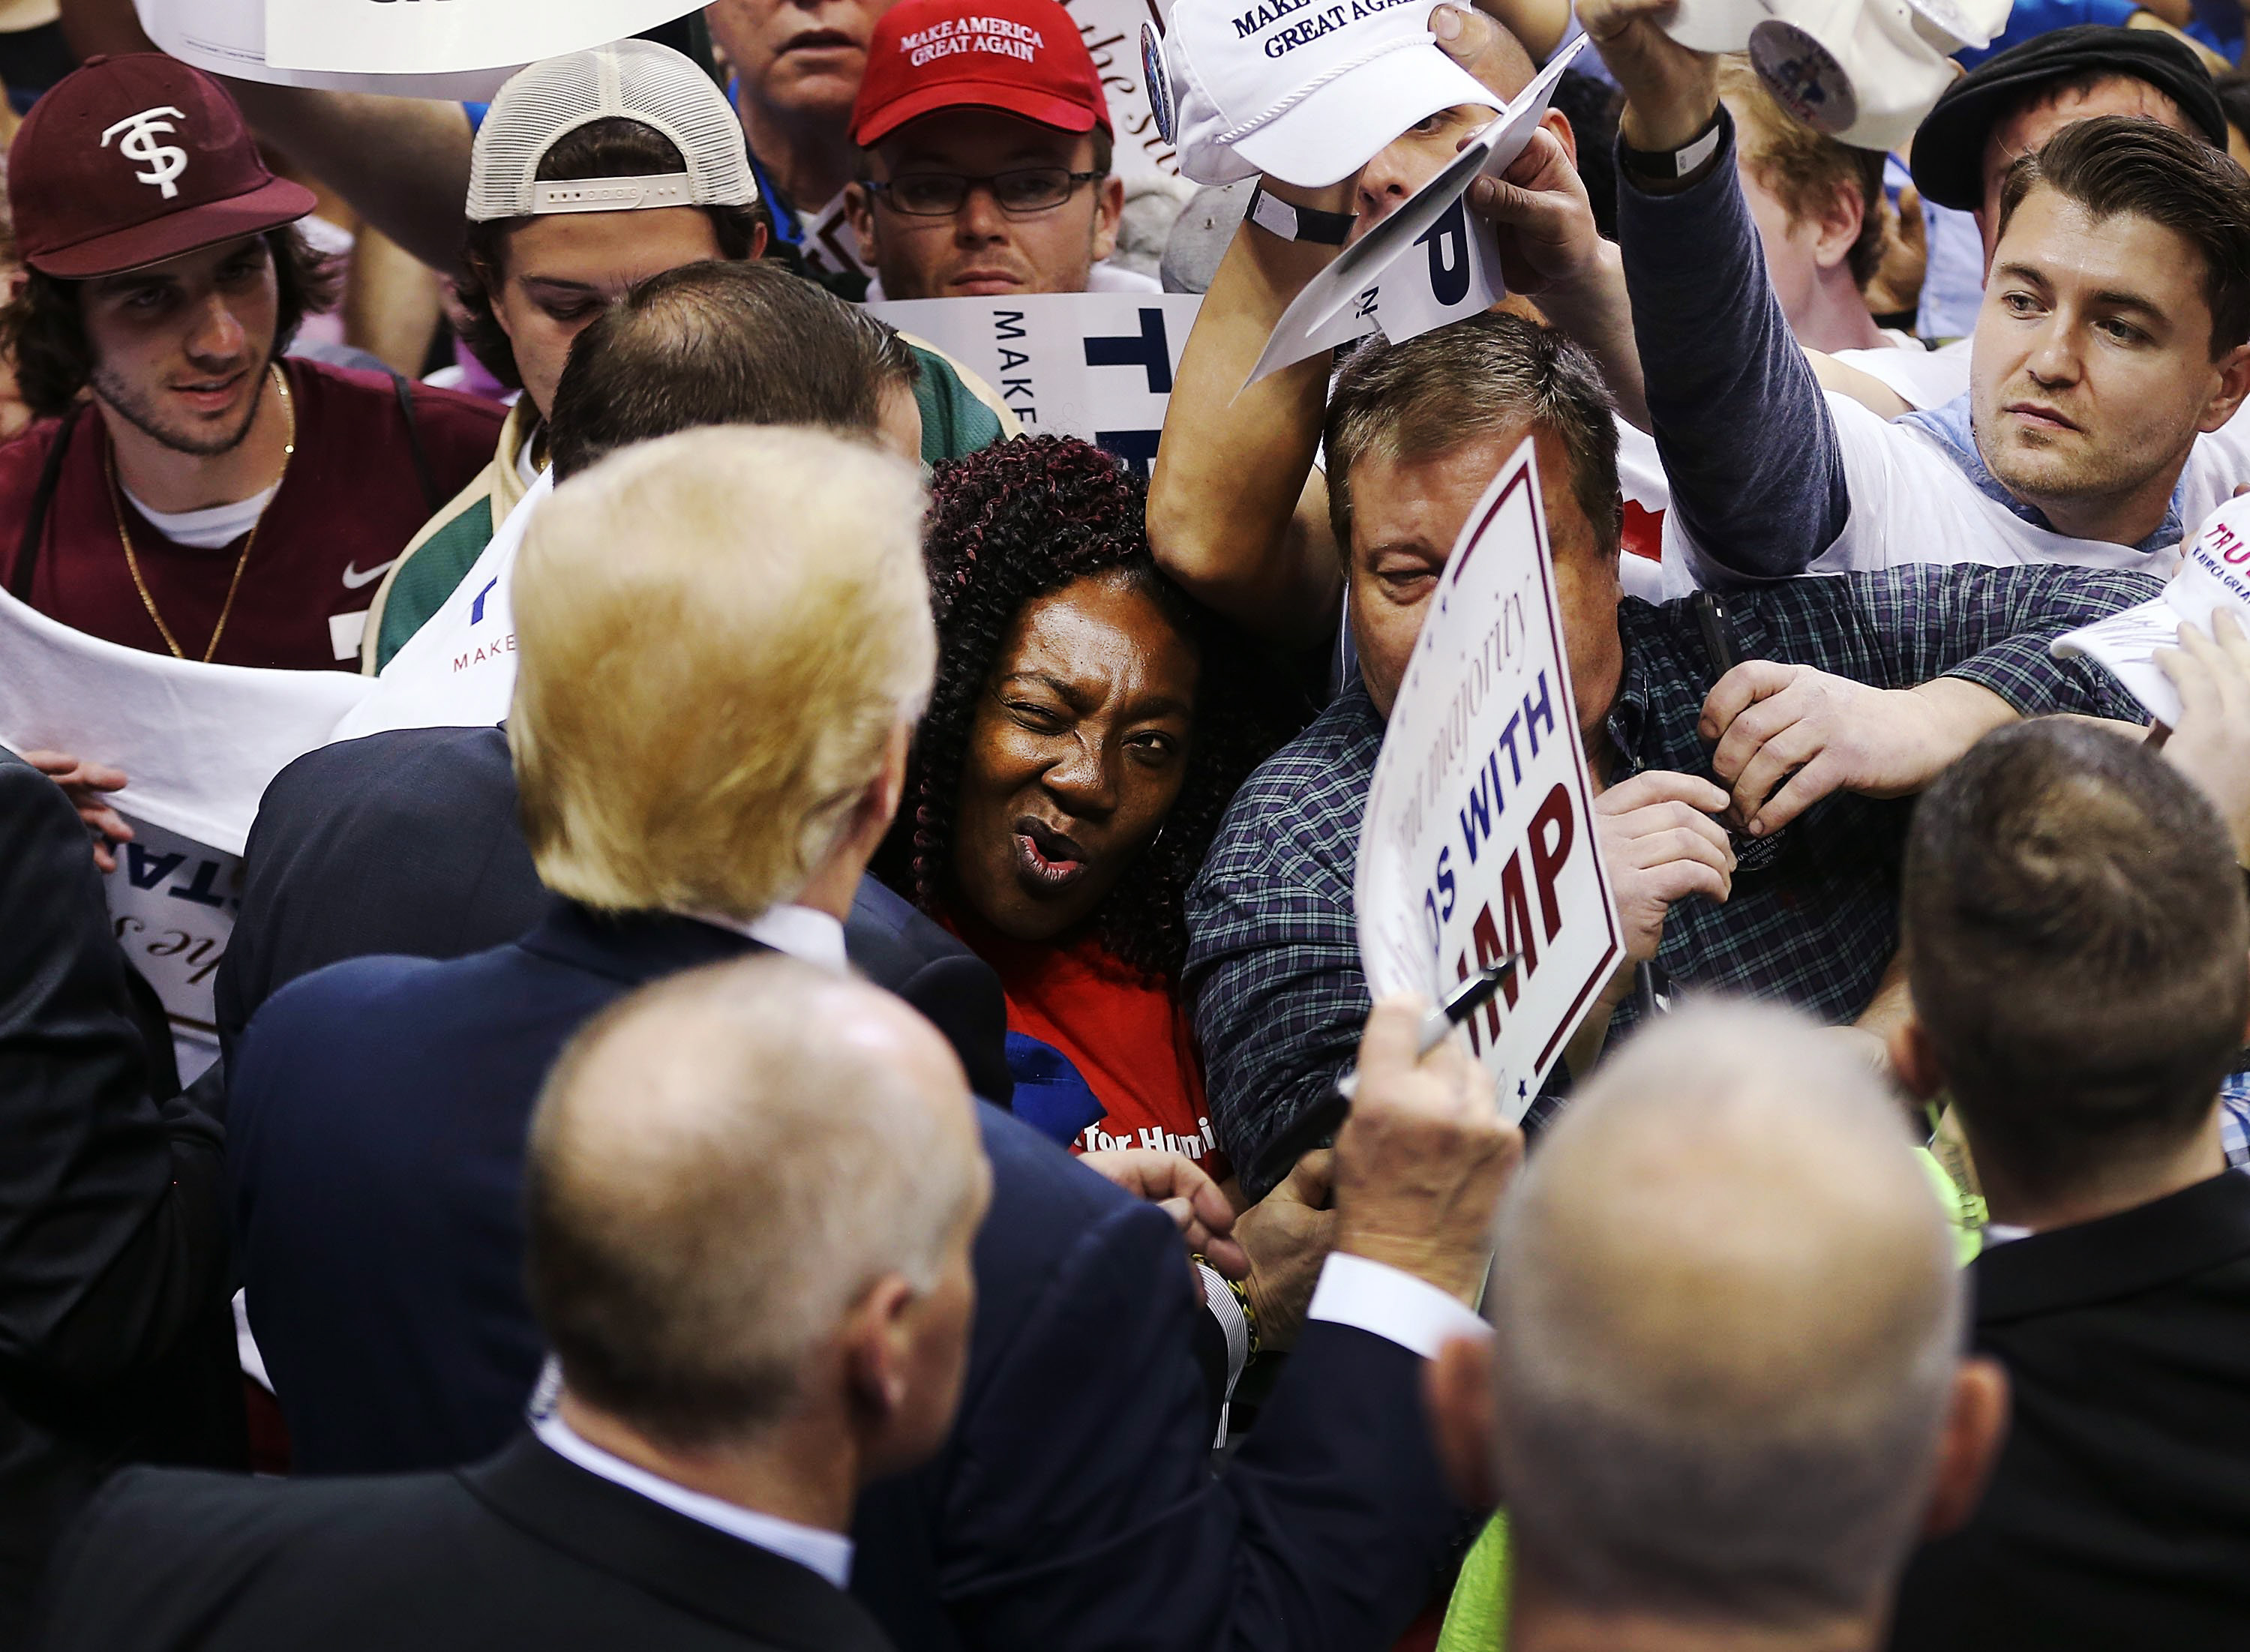 Republican presidential candidate Donald Trump greets people during a campaign rally at the University of South Florida Sun Dome on Feb. 12, 2016 in Tampa, Fla.